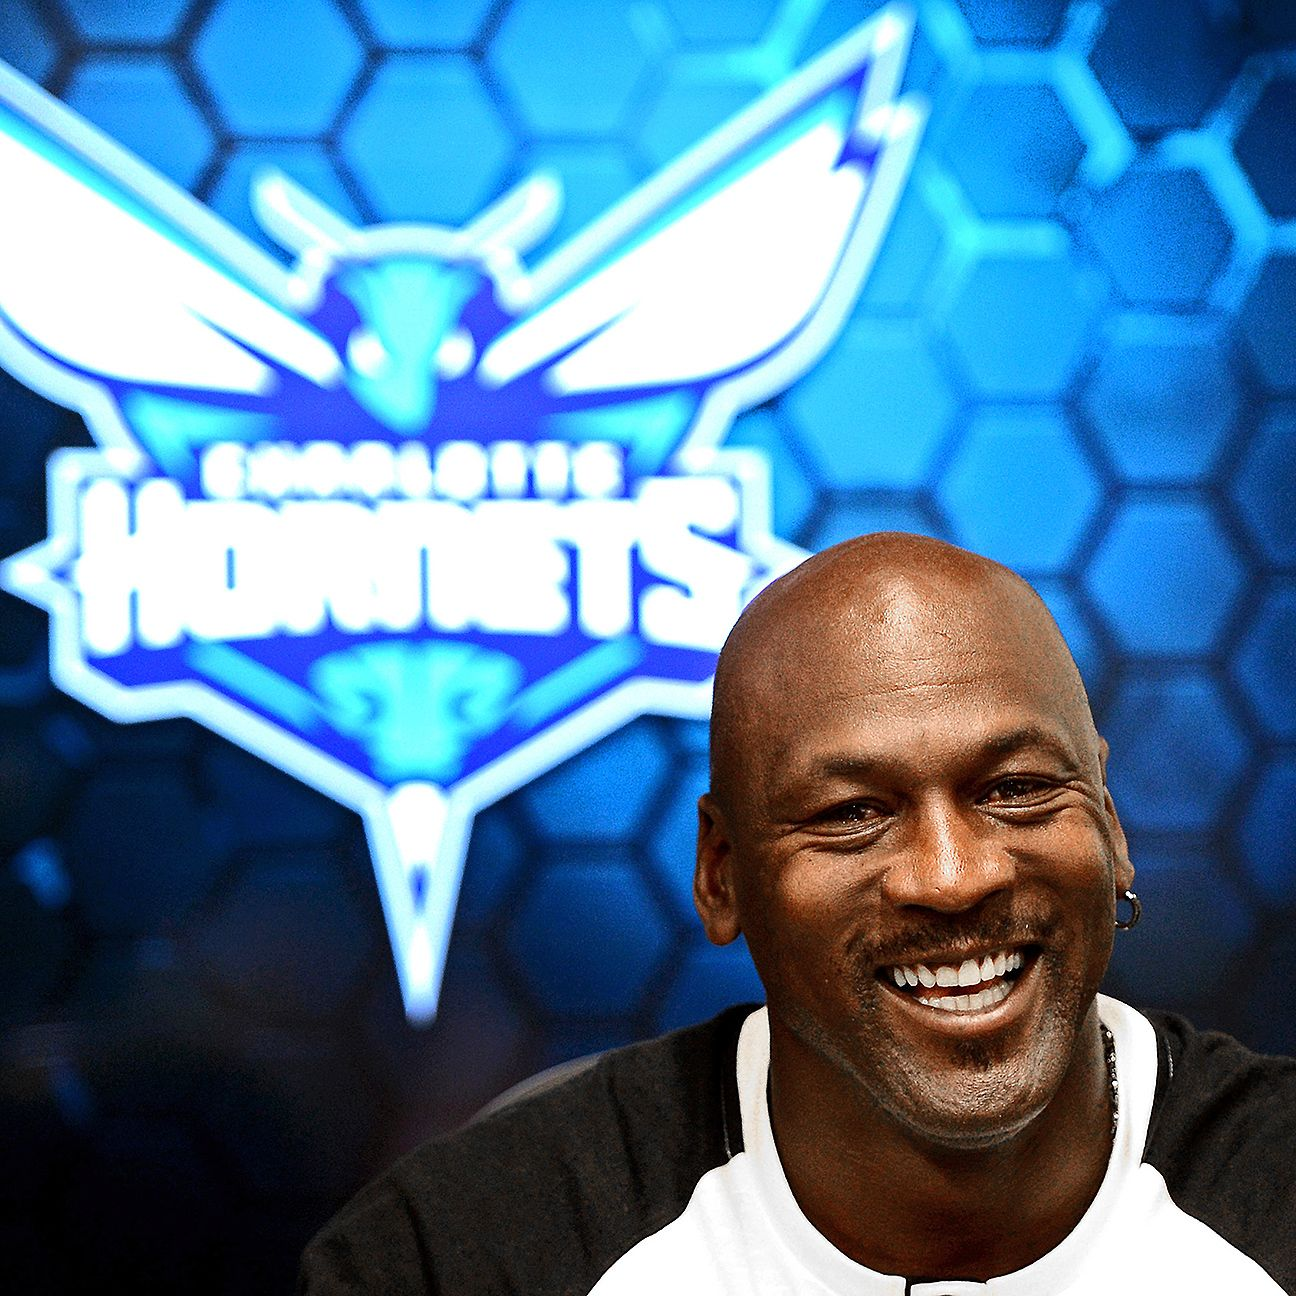 Michael Jordan's contribution to black issues greater than perceived